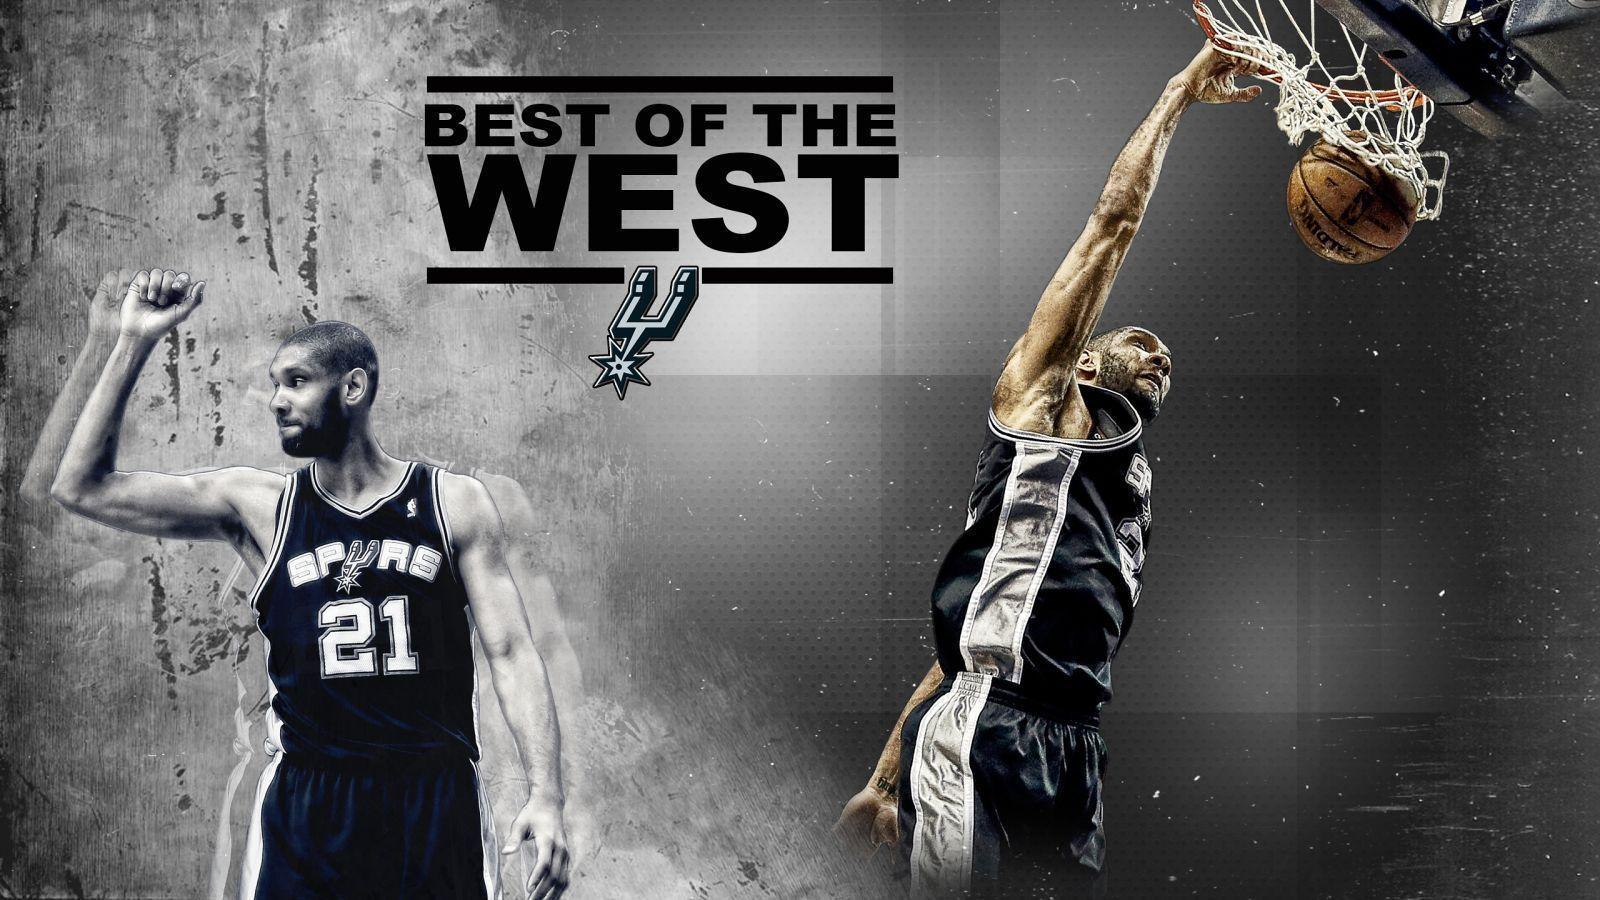 Spurs 2016 wallpapers wallpaper cave - Tim duncan iphone wallpaper ...